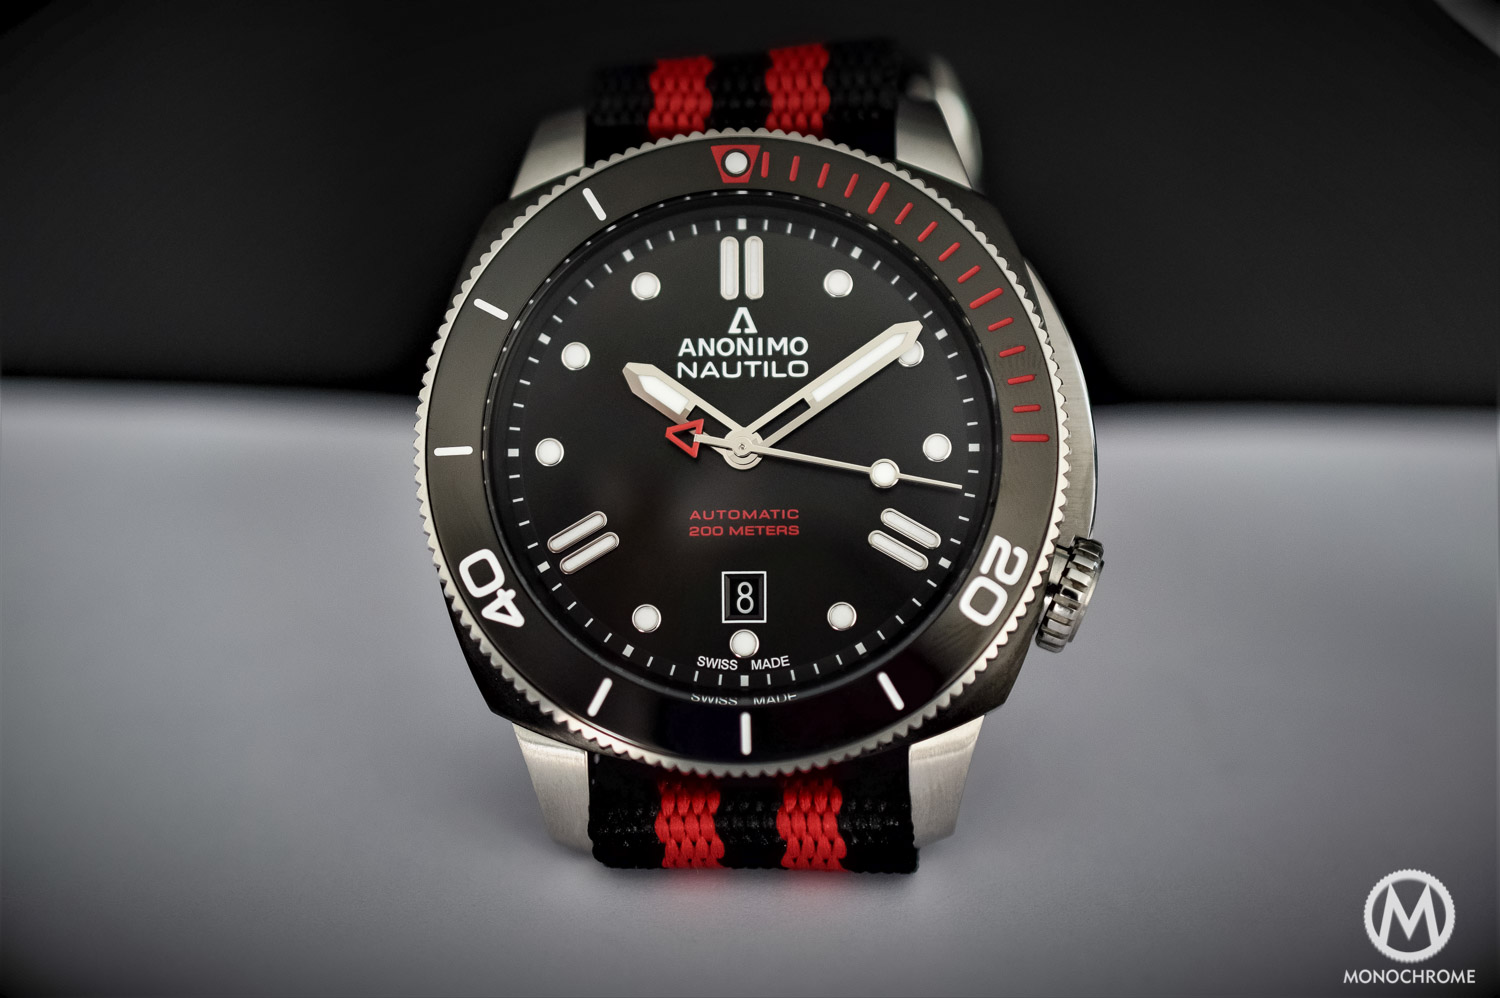 Anonimo Nautilo Sailing Edition - Dive Watch